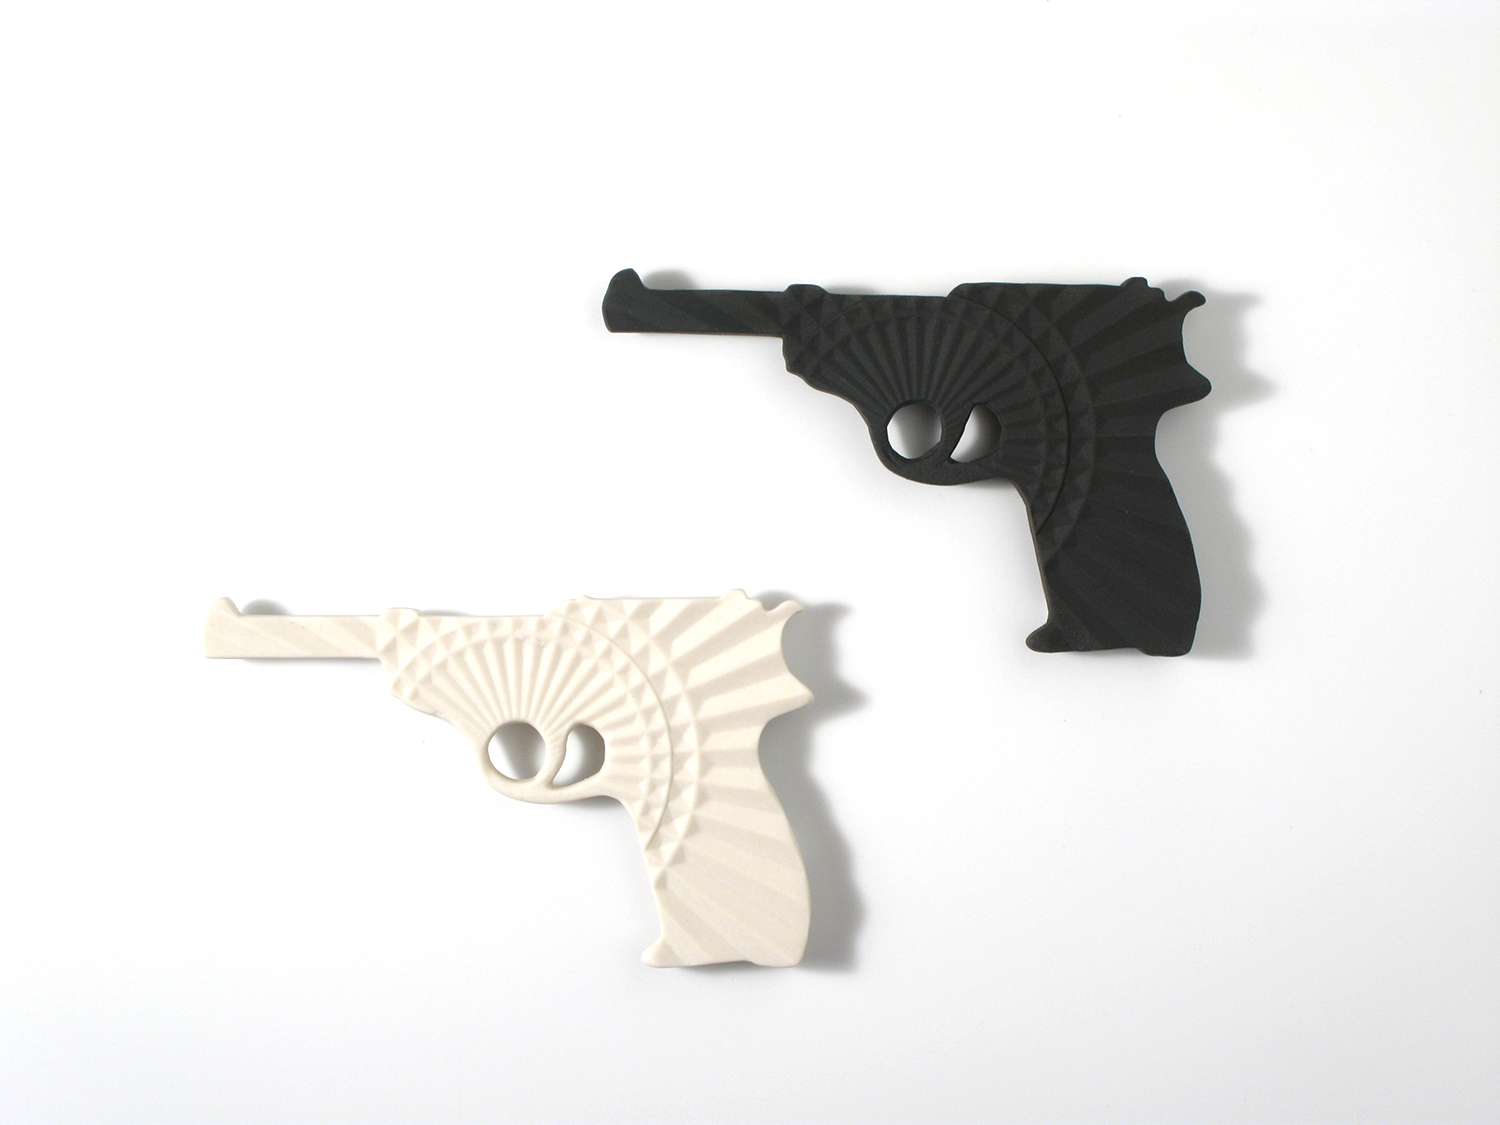 black and white guns.jpg